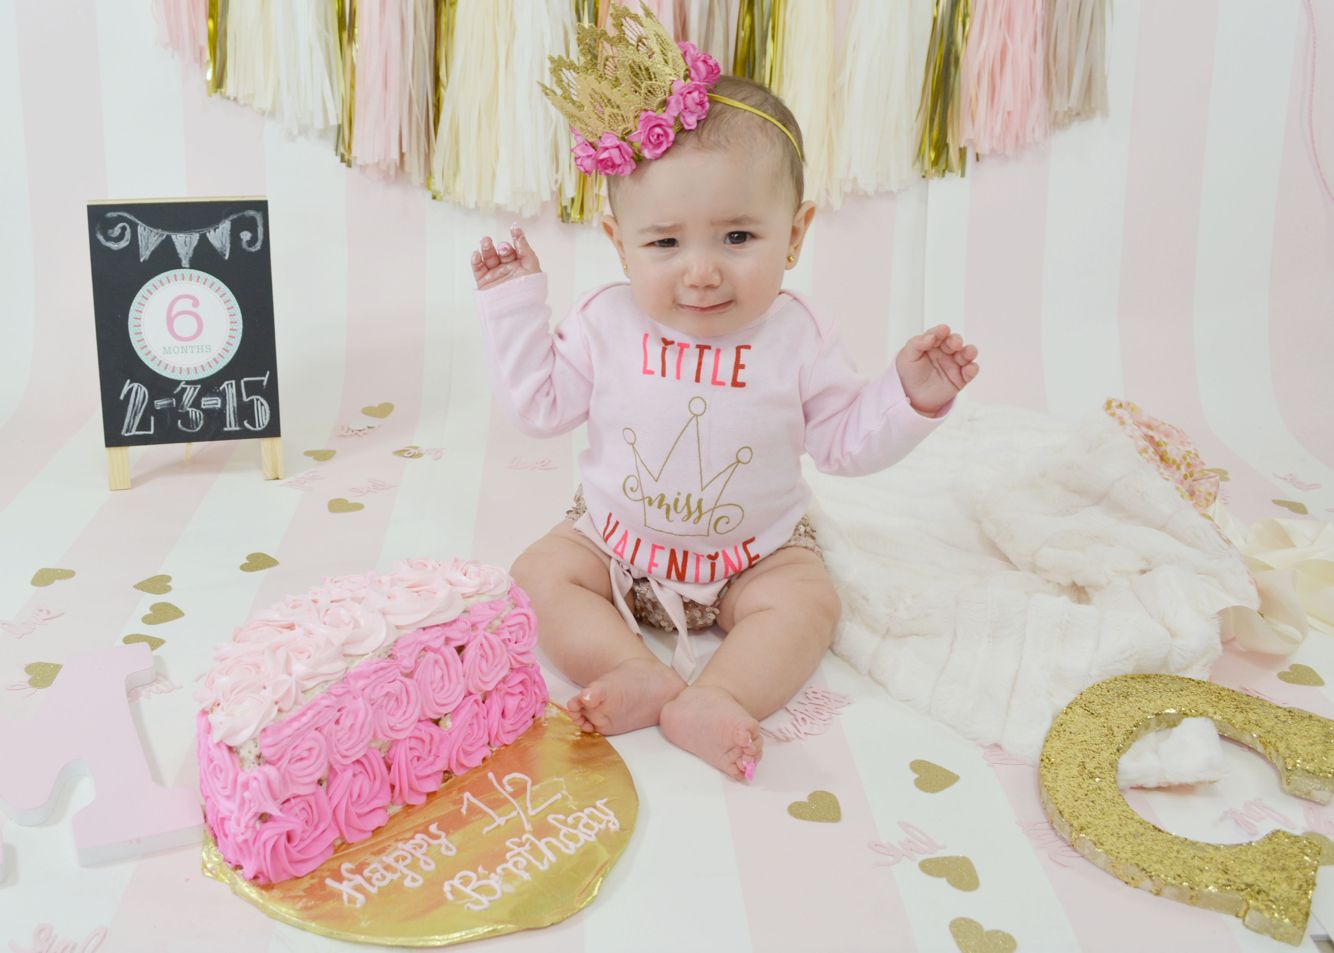 6 Month Cake Smash For My Baby Pinterest 6 Months Birthday